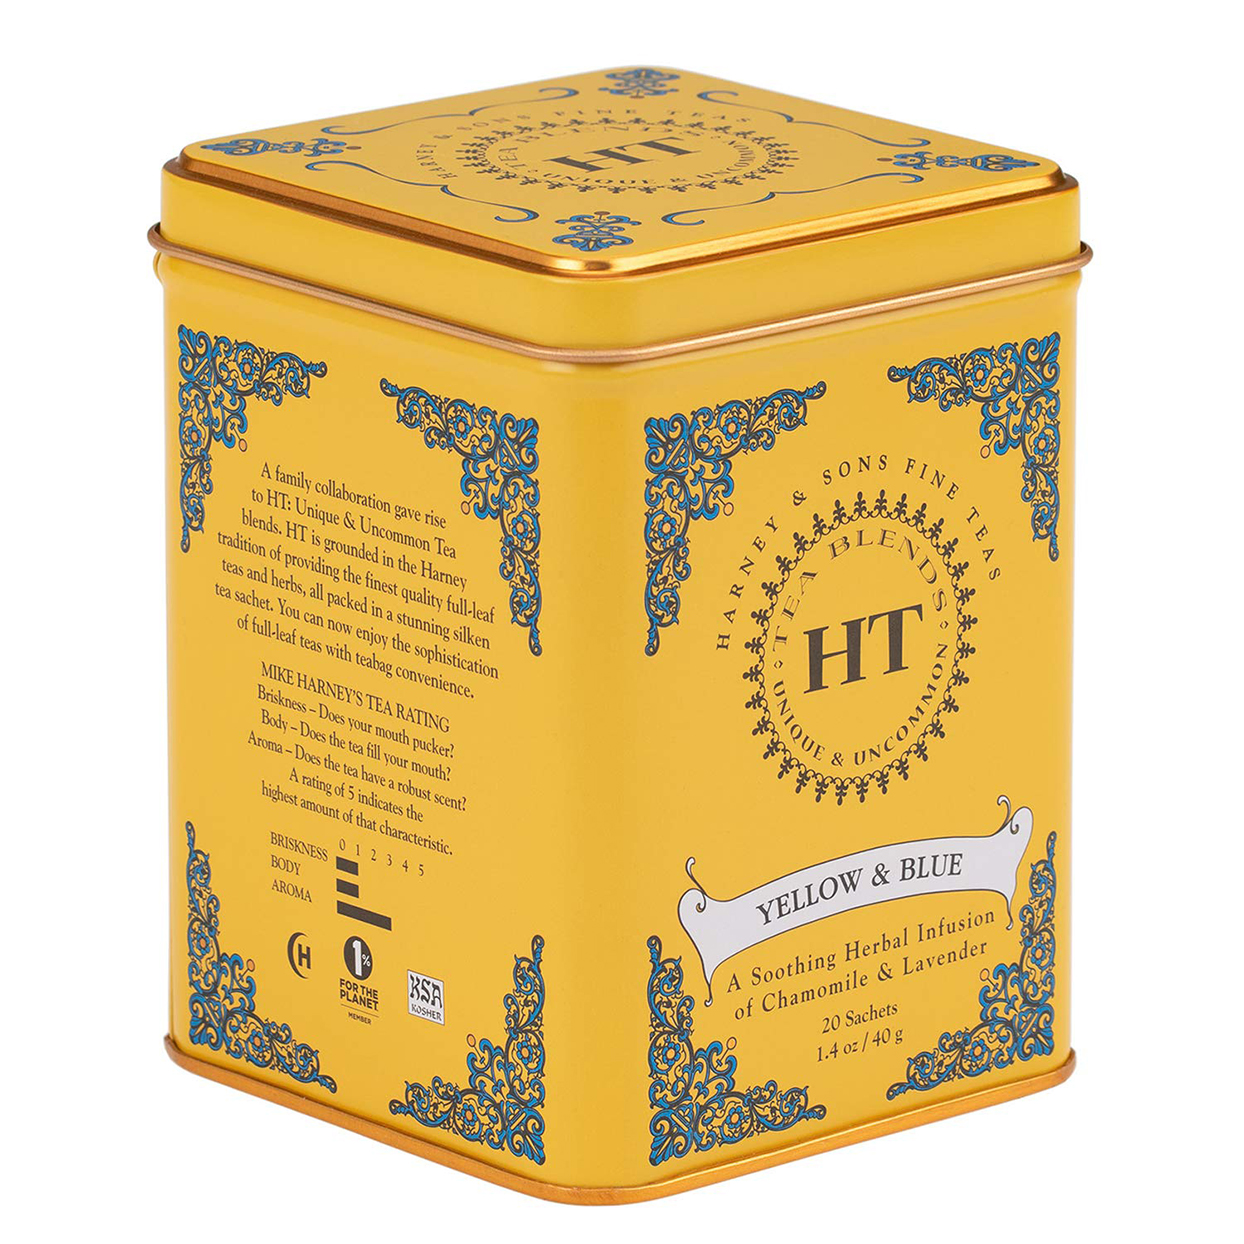 Harney and Sons Yellow and Blue Tea Sachets